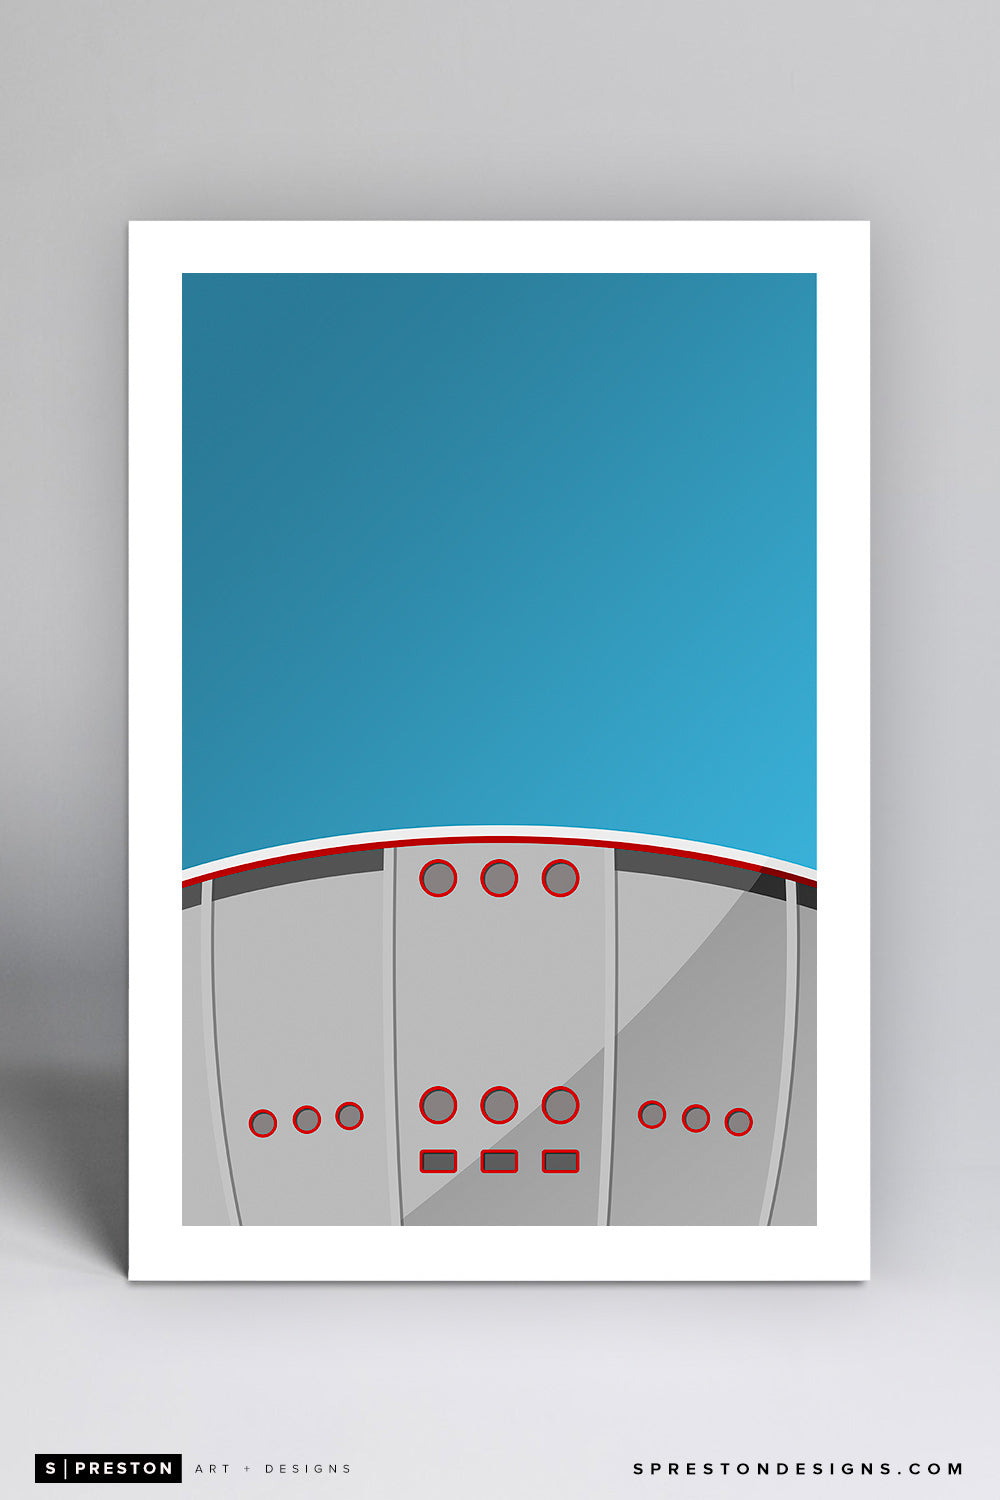 Minimalist Scotiabank Saddledome - Calgary Flames - S. Preston